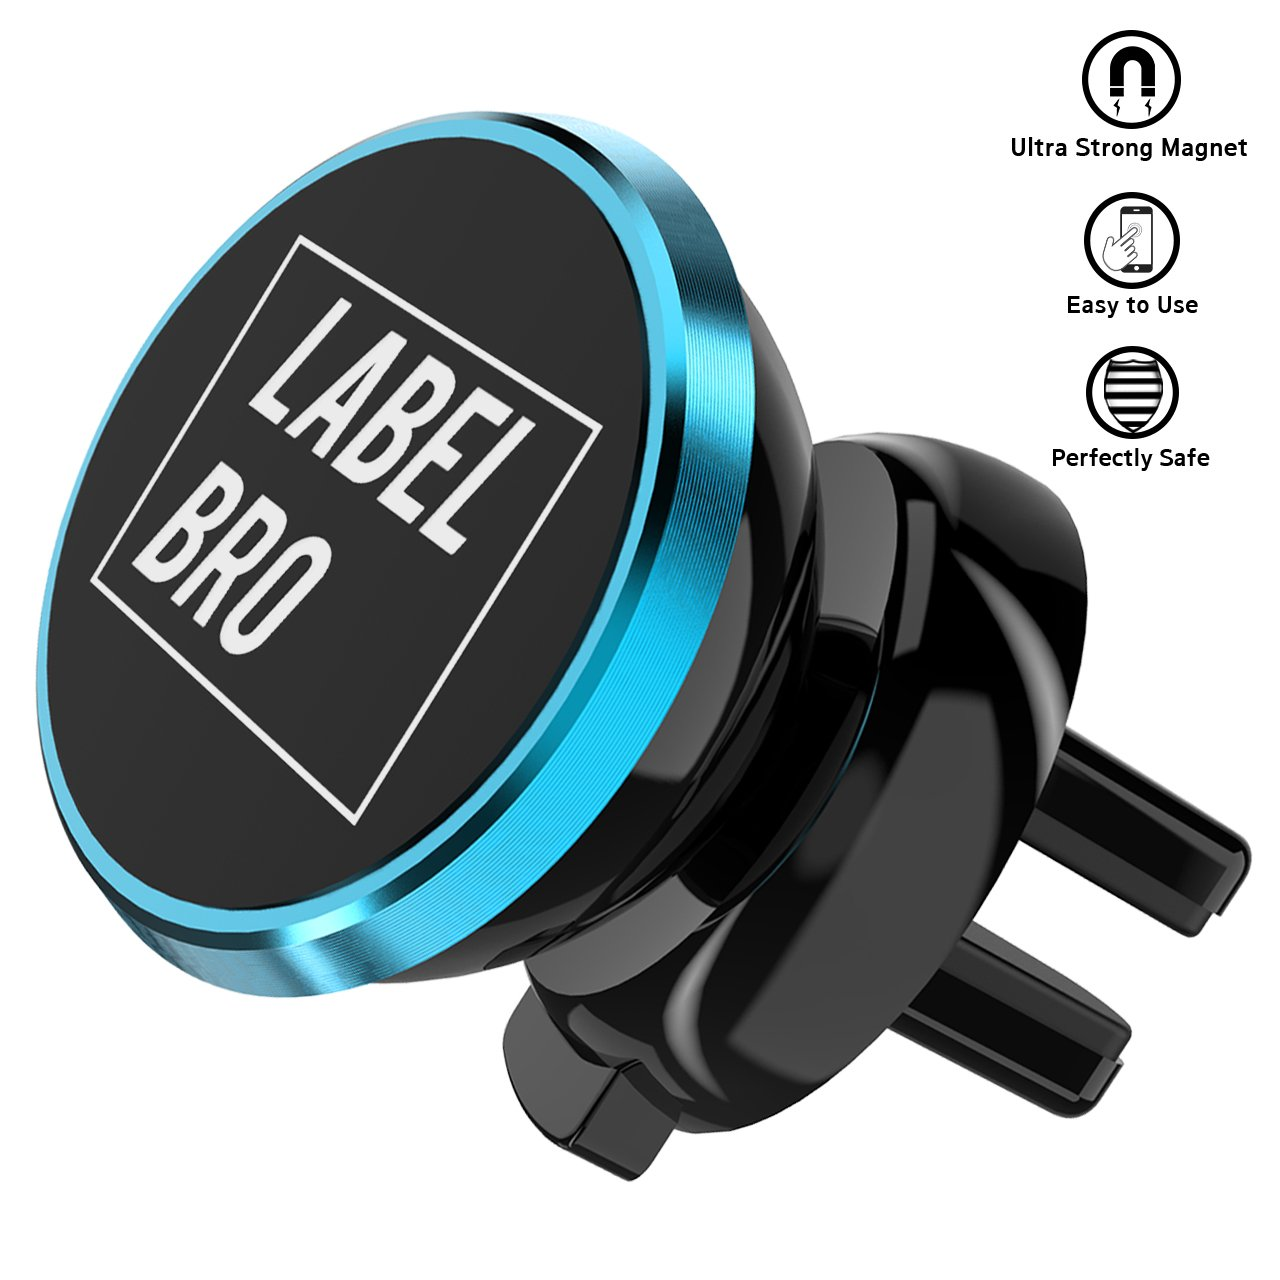 8 Labelbro Magnetic Phone car Mount Universal Air Vent Magnetic Cell Phone Holder for iPhone X Rose Gold Samsung Galaxy s8 7 s6 8plus s7 and All Smartphone 7plus